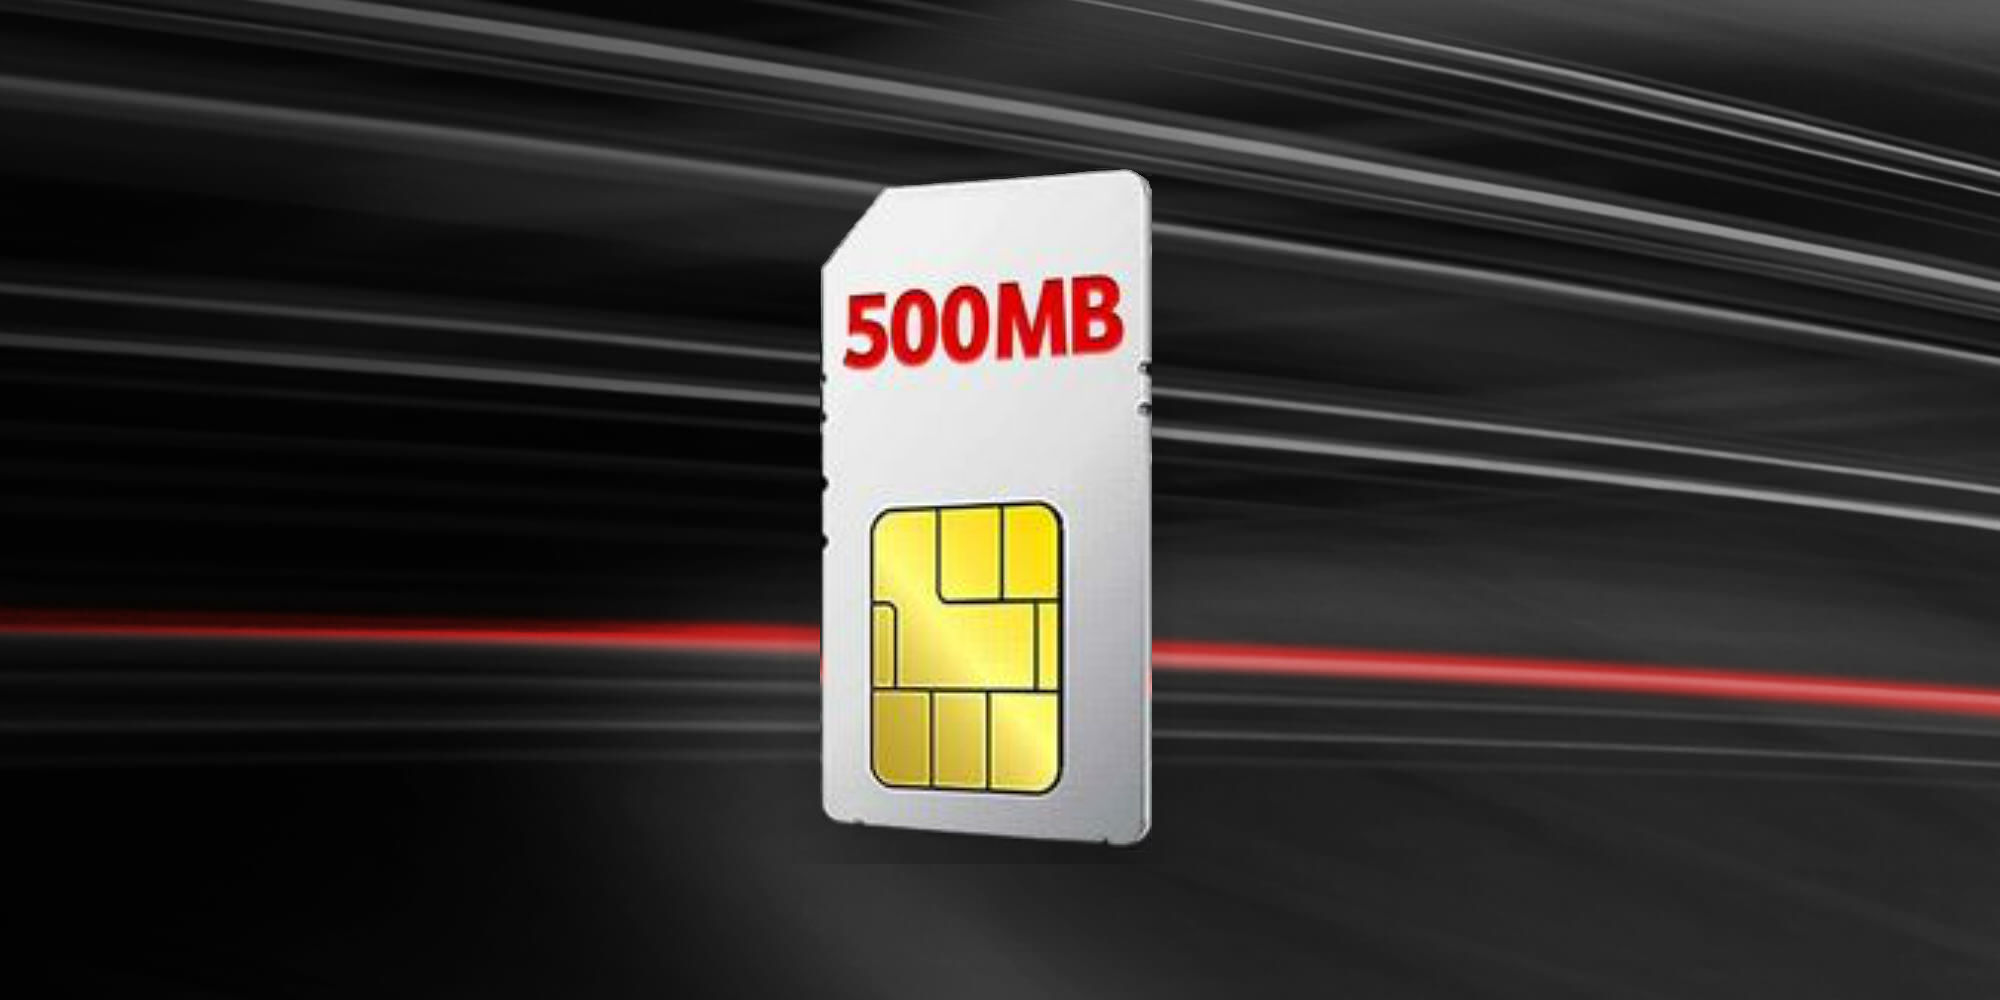 500MB Business SIM Only